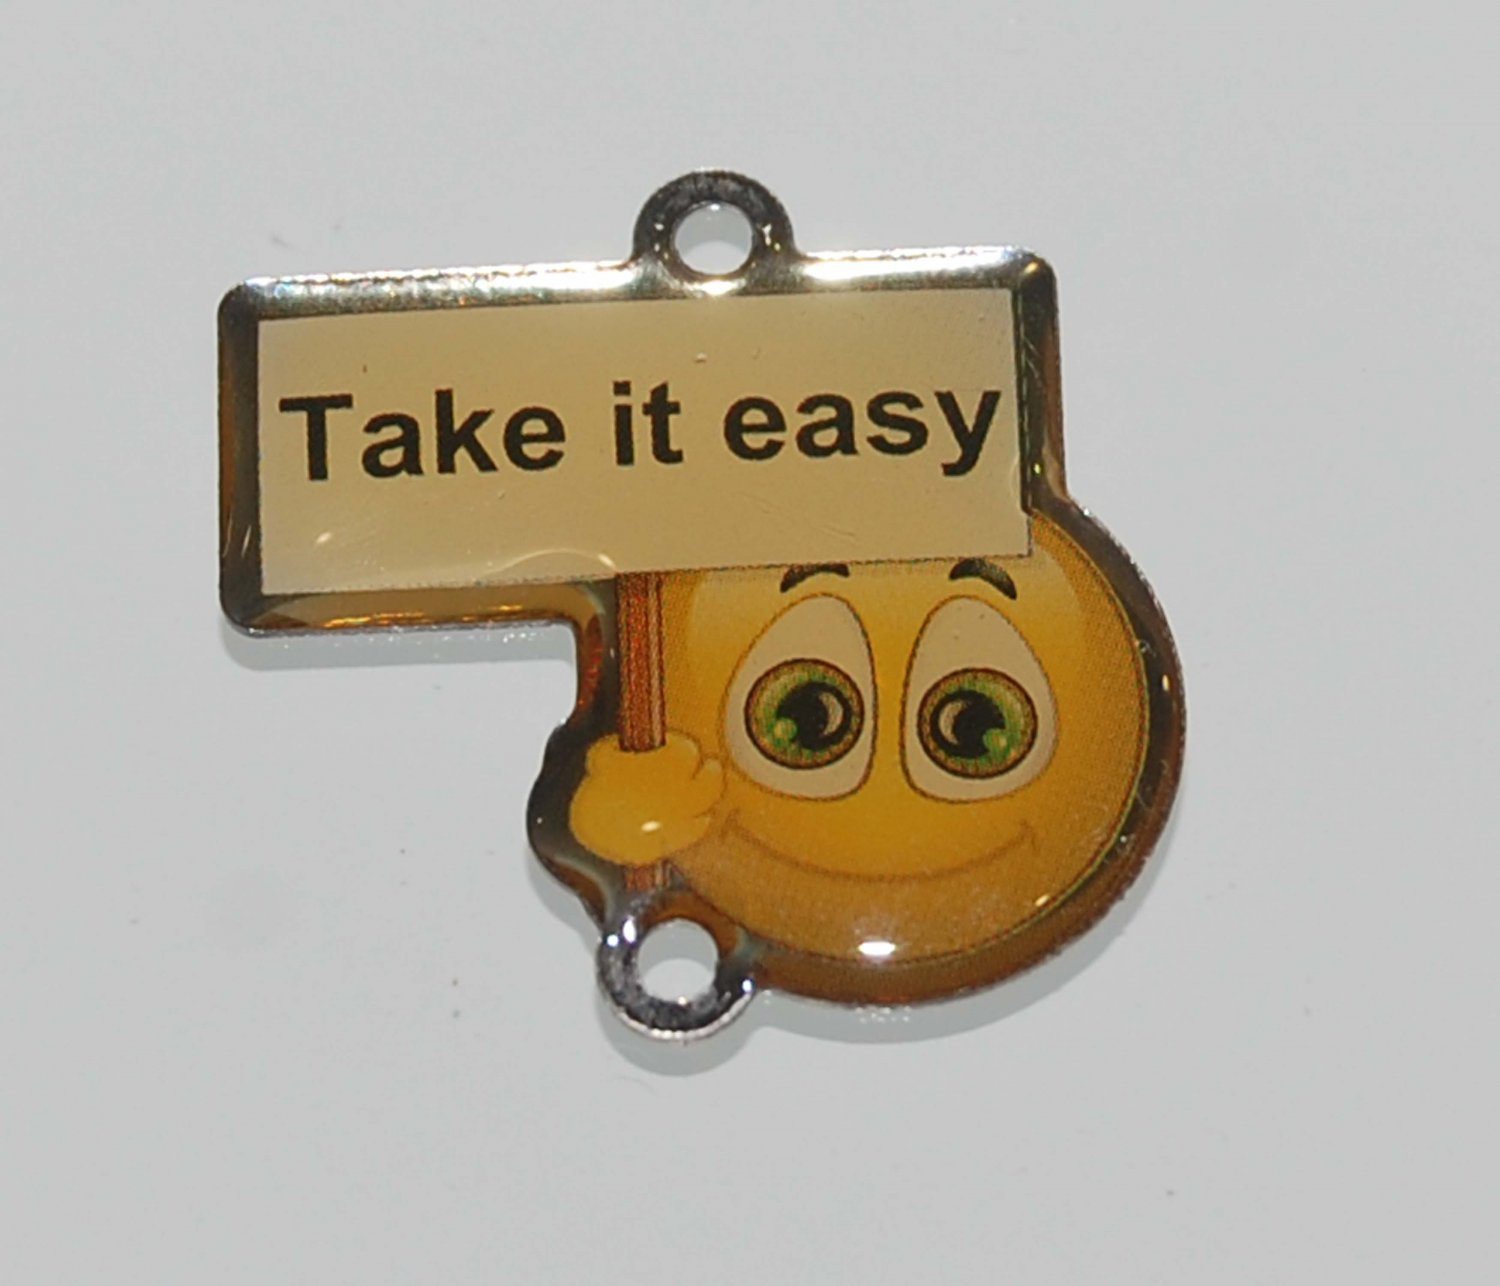 Hong Kong OK Convenient Store Metal Emoji Pendants - Take It Easy 2 cm